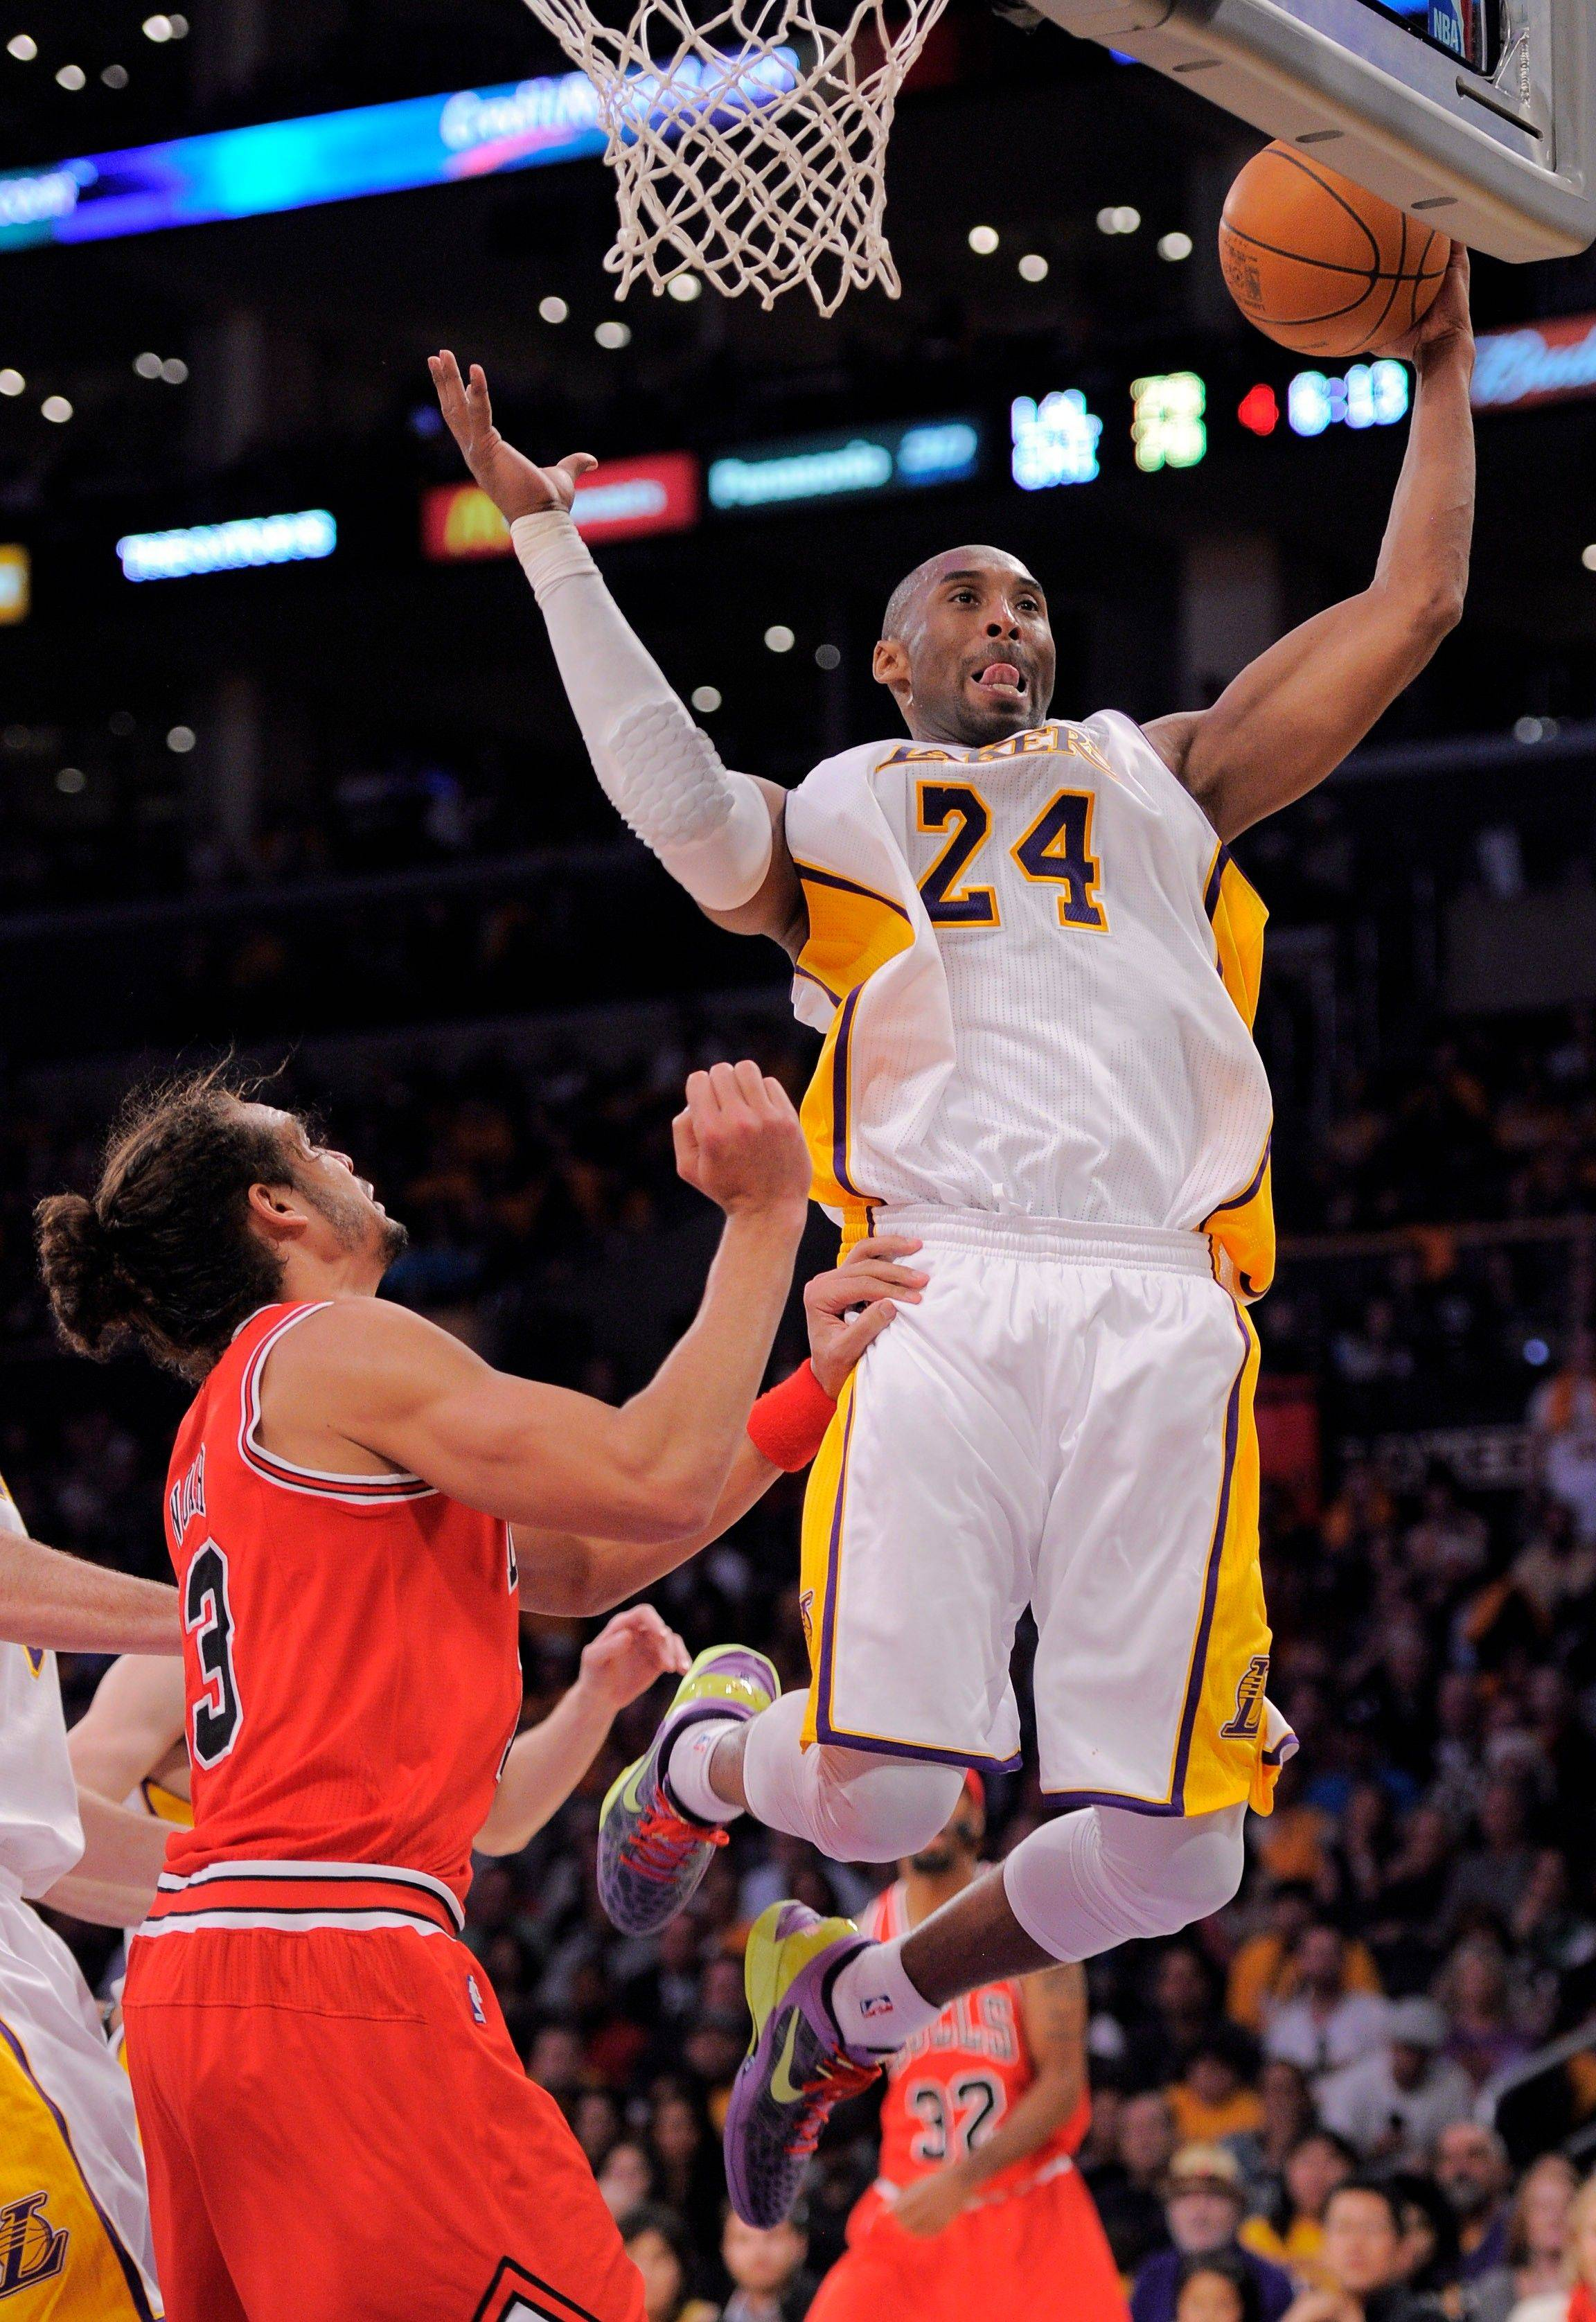 Los Angeles Lakers guard Kobe Bryant grabs a rebound as Bulls center Joakim Noah defends during the second half Sunday.